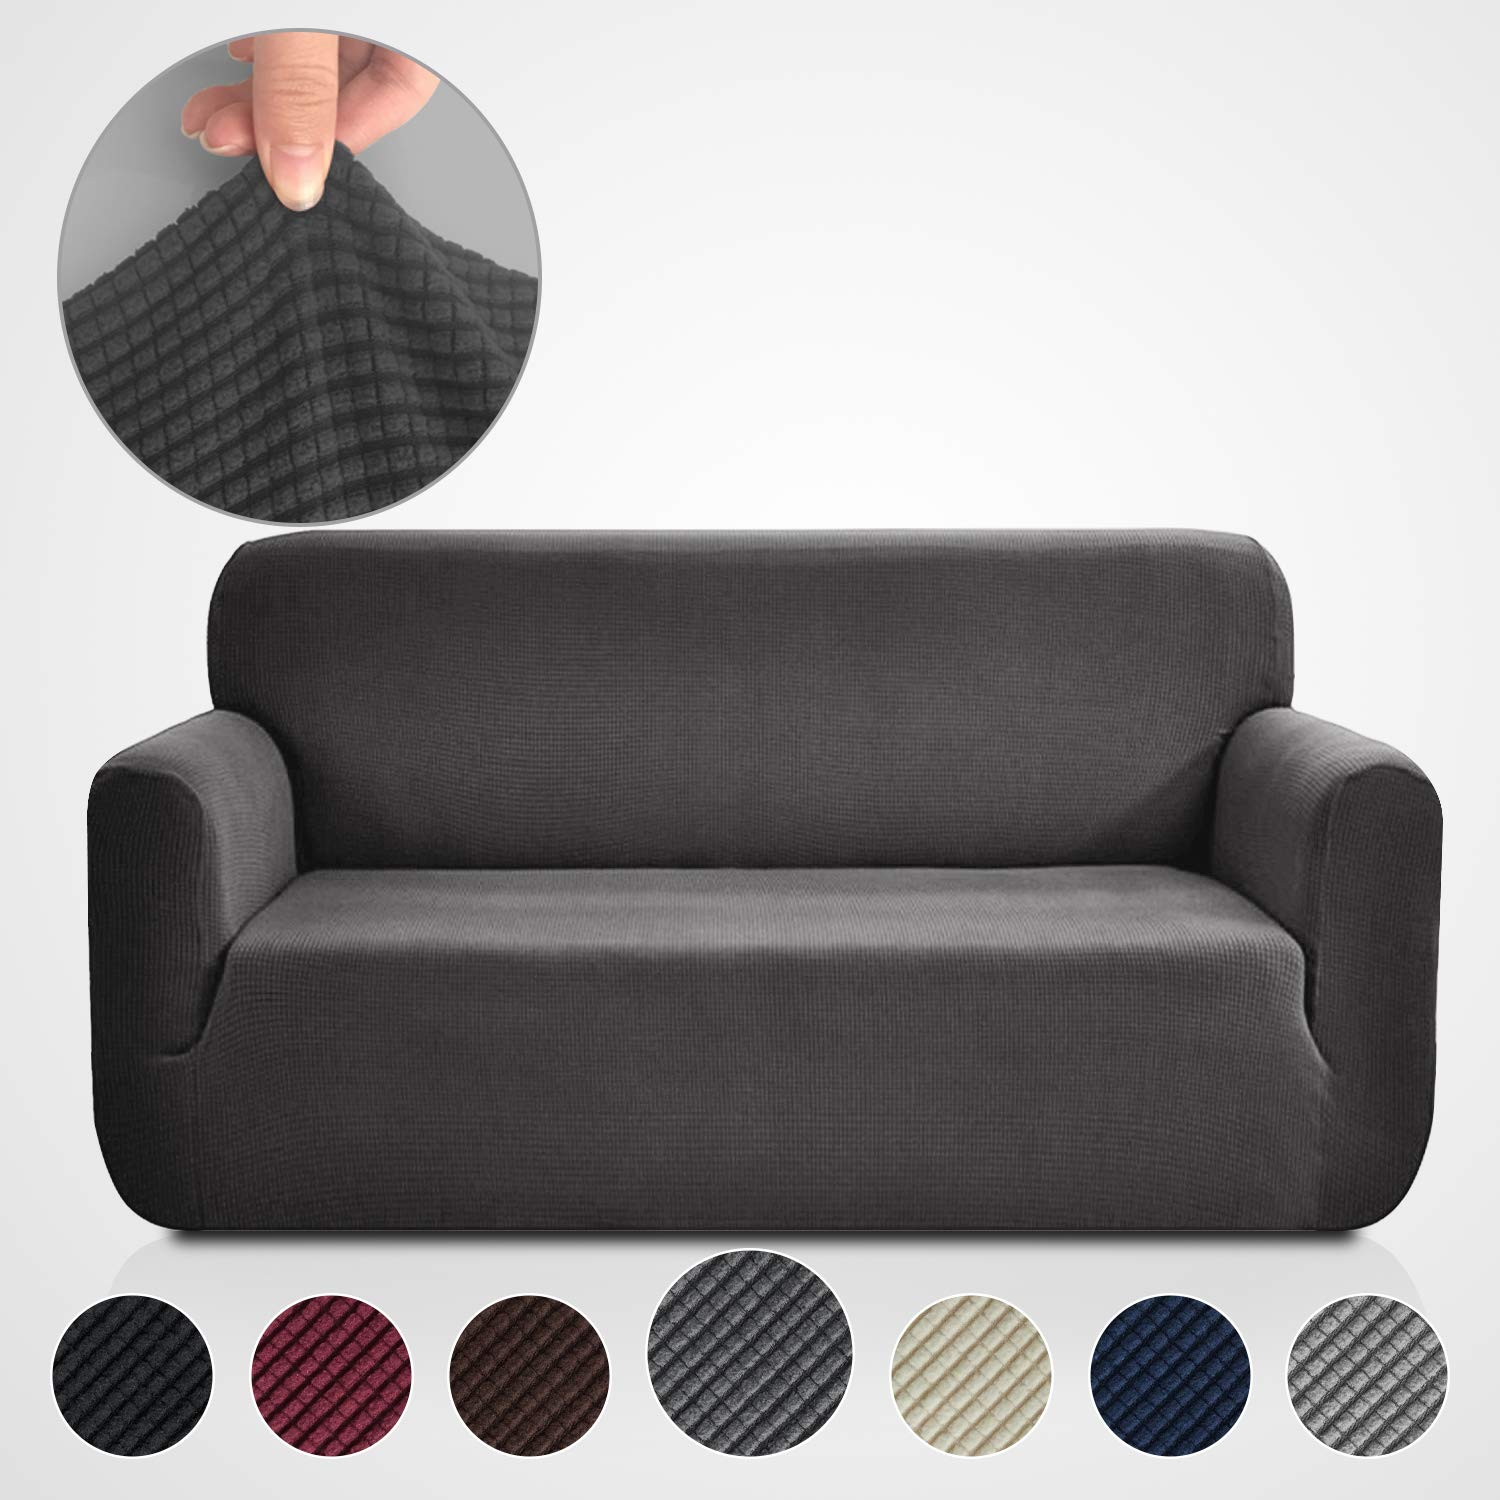 Details about RHF Jacquard-Sofa Slipcover, Stretch Couch Covers for 3  Cushion Couch-Couch